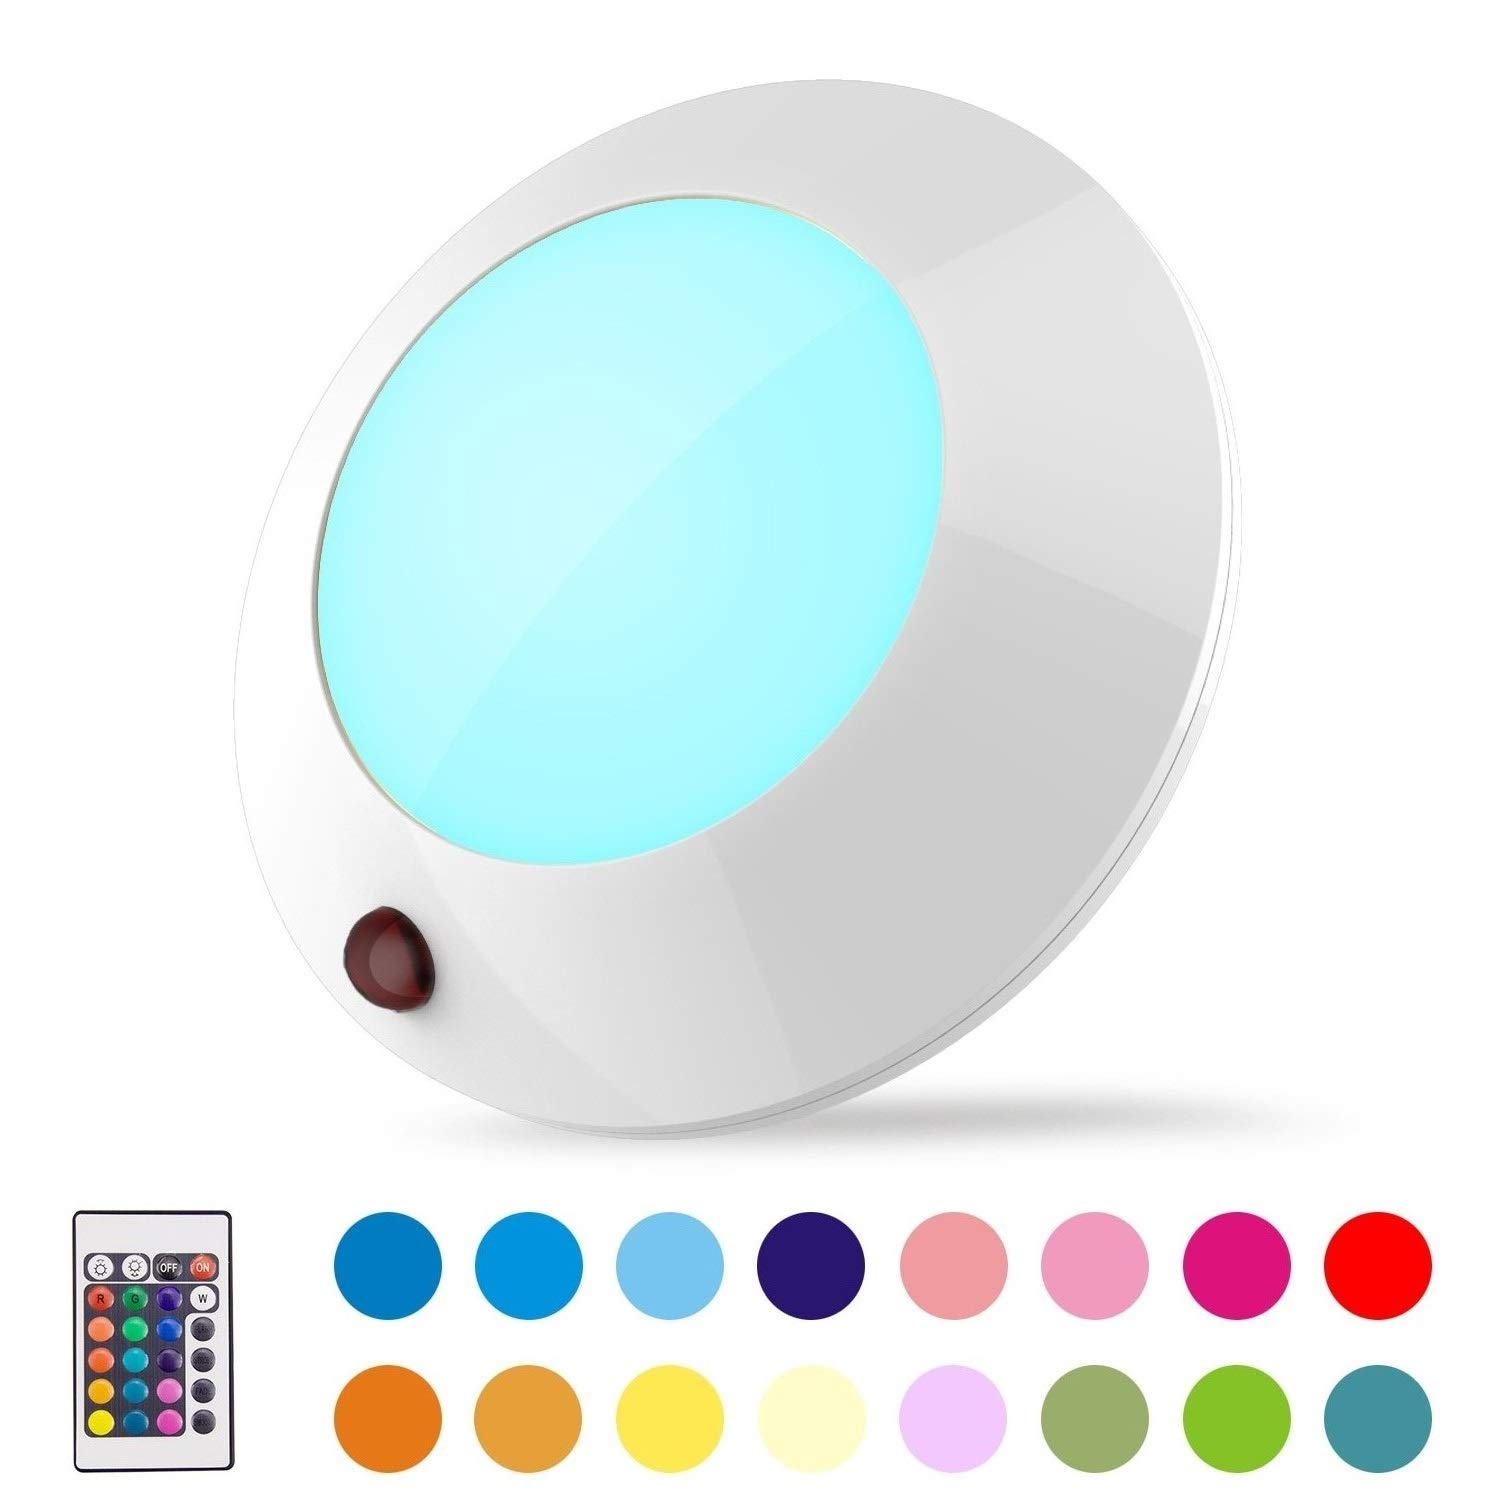 BIGLIGHT Battery Operated LED Ceiling Light Indoor/Outdoor, Color Changing Lights, Remote Controlled, Wireless Light for Hallway Shower Shed Closet Hall Corridor Bedroom Bathroom Mood Lighting, 5 Inch